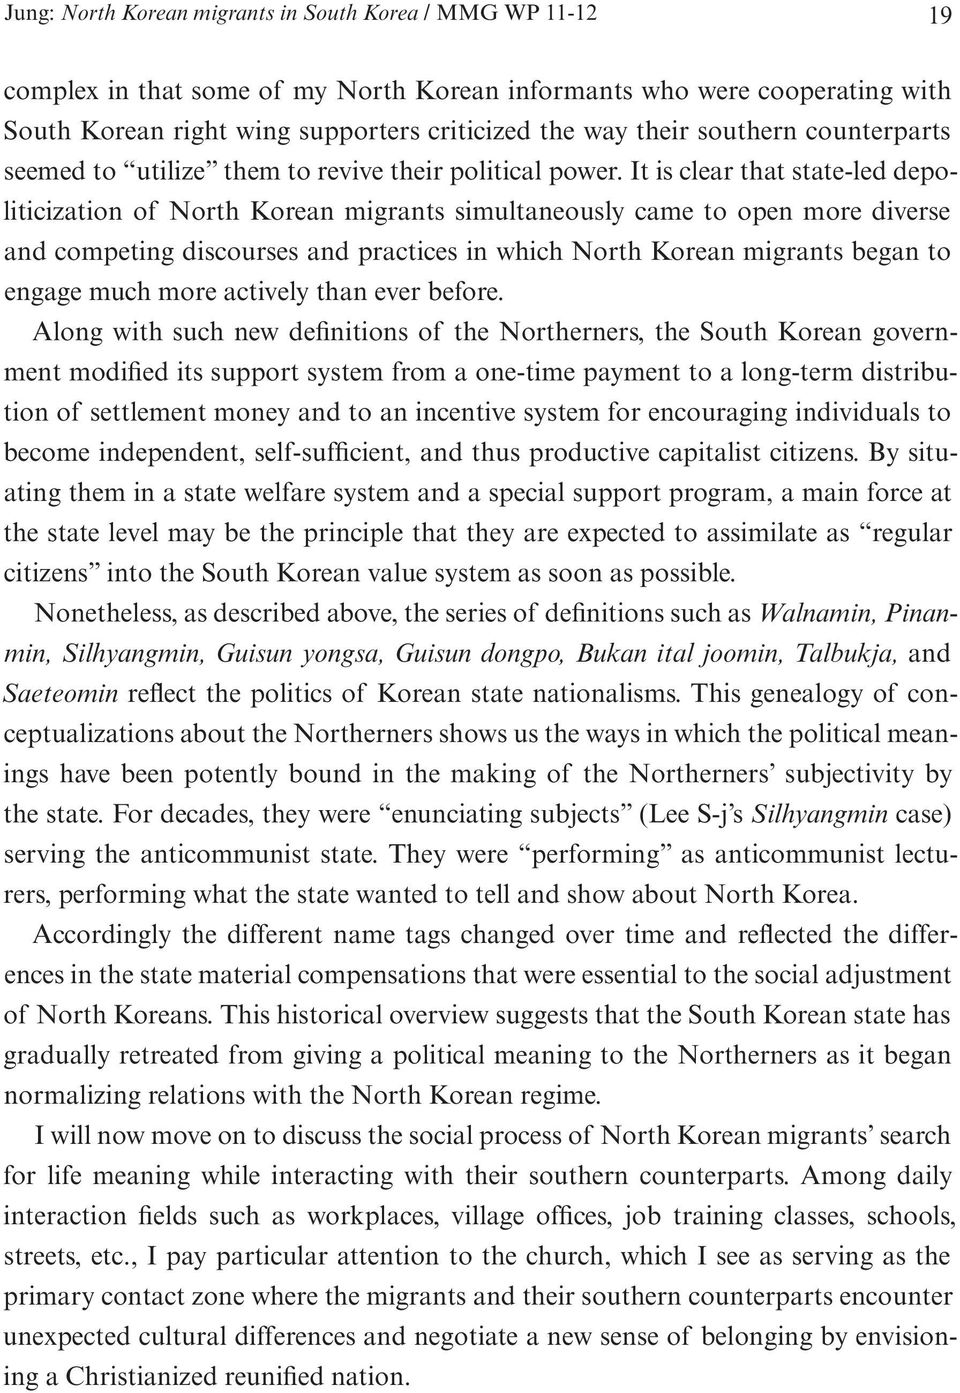 It is clear that state-led depoliticization of North Korean migrants simultaneously came to open more diverse and competing discourses and practices in which North Korean migrants began to engage